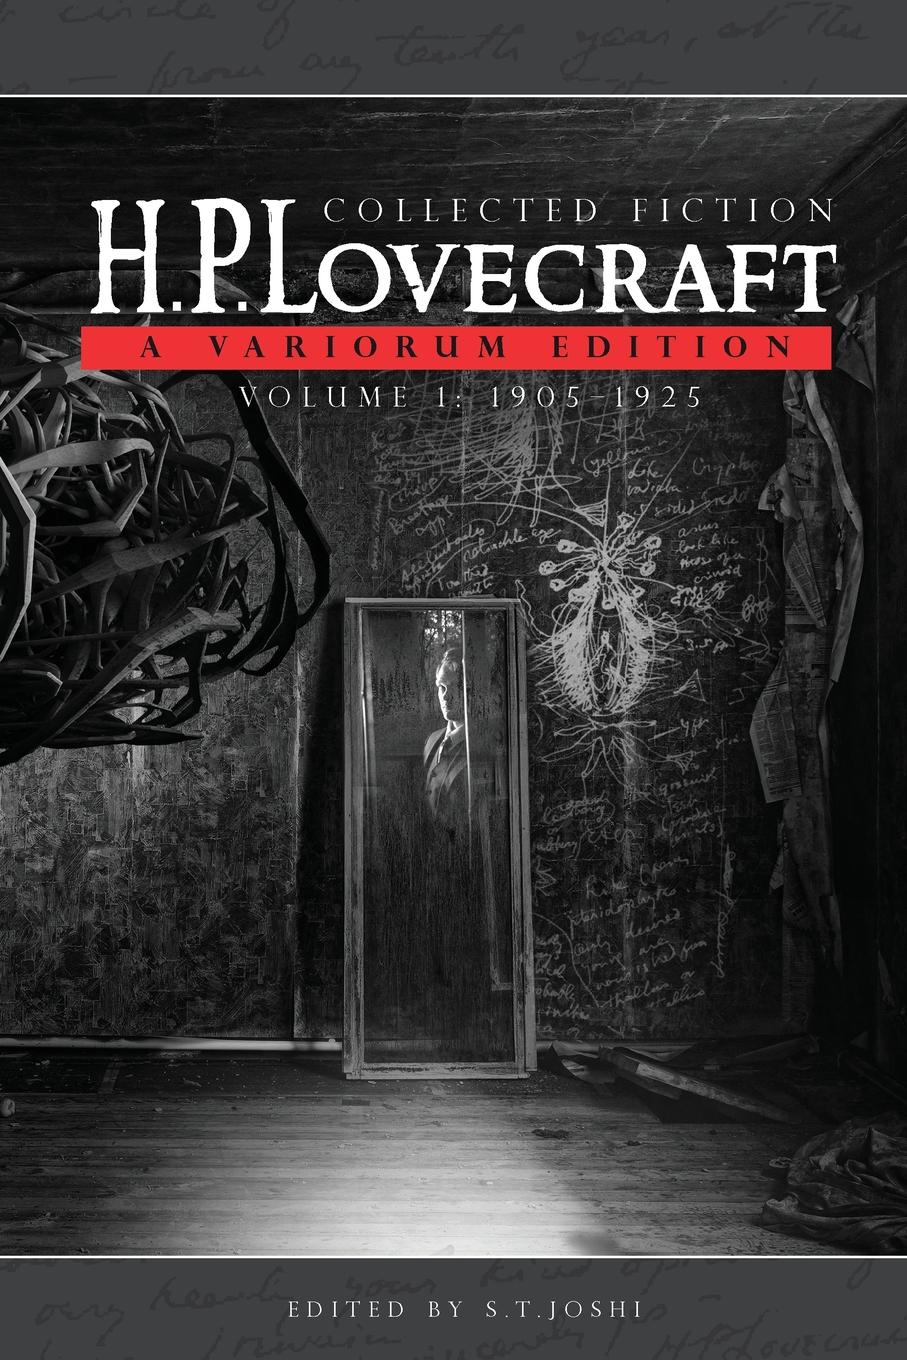 лучшая цена H. P. Lovecraft Collected Fiction Volume 1 (1905-1925). A Variorum Edition